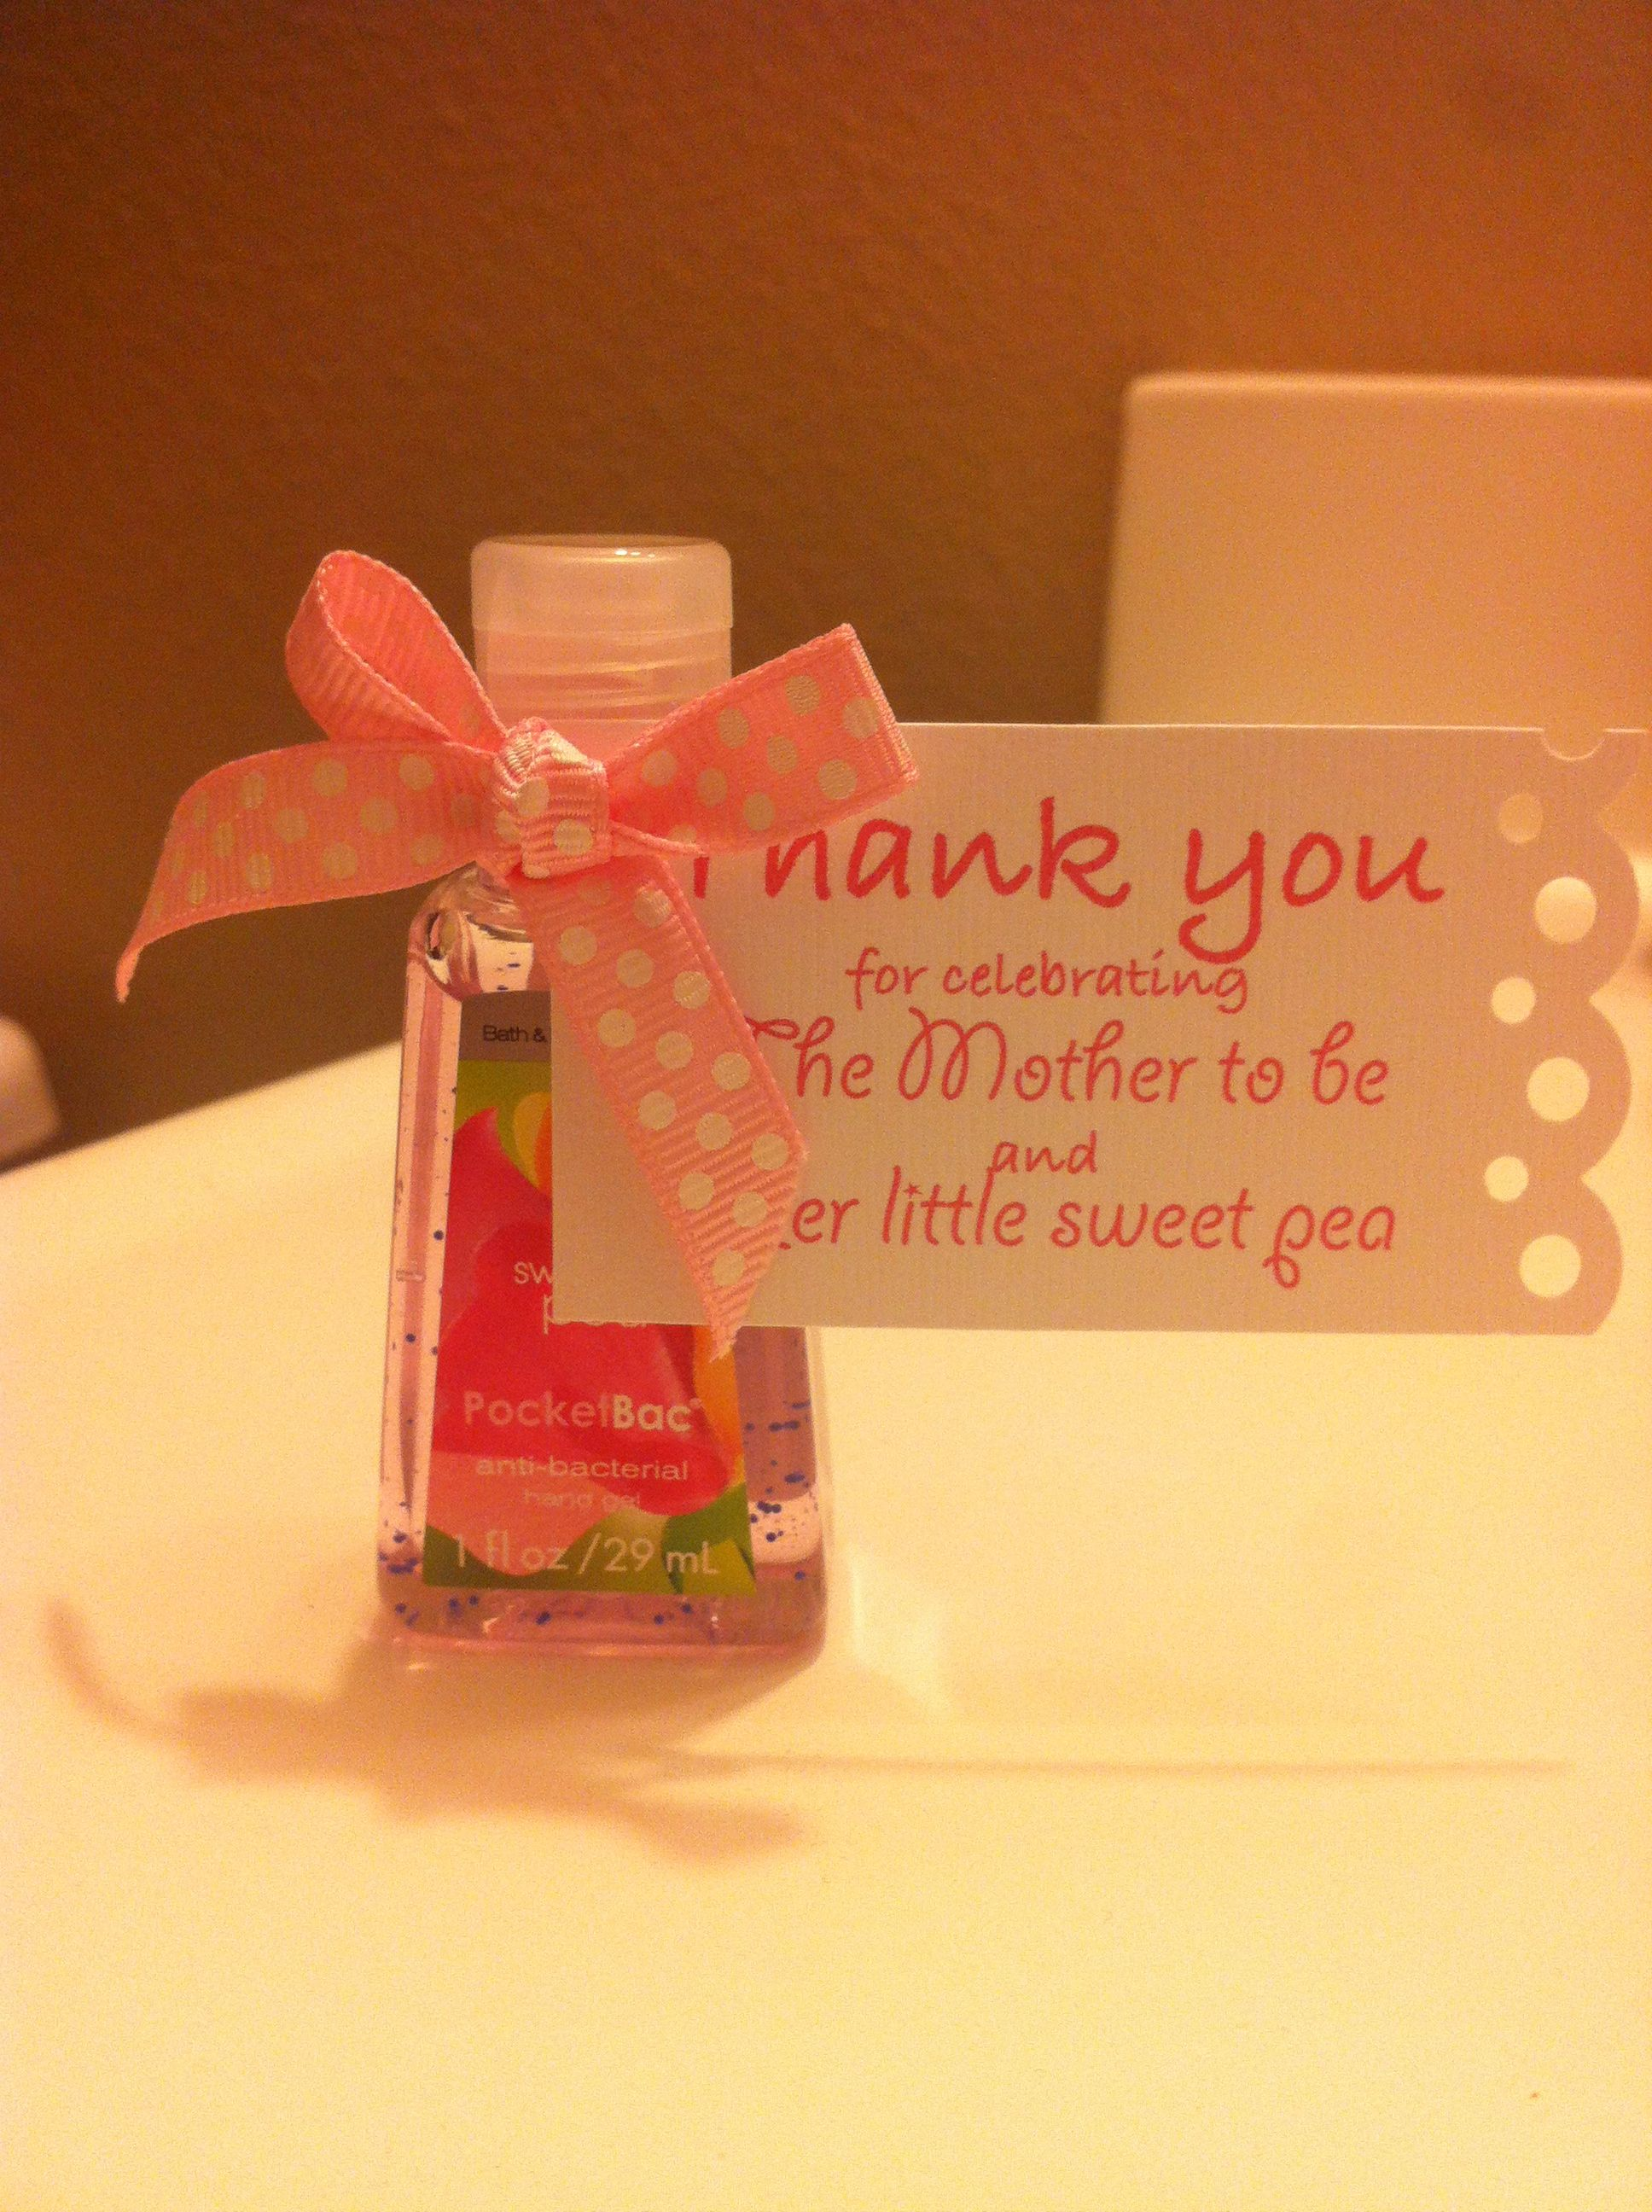 From our little sweet pea sweet pea scent So cute Can also